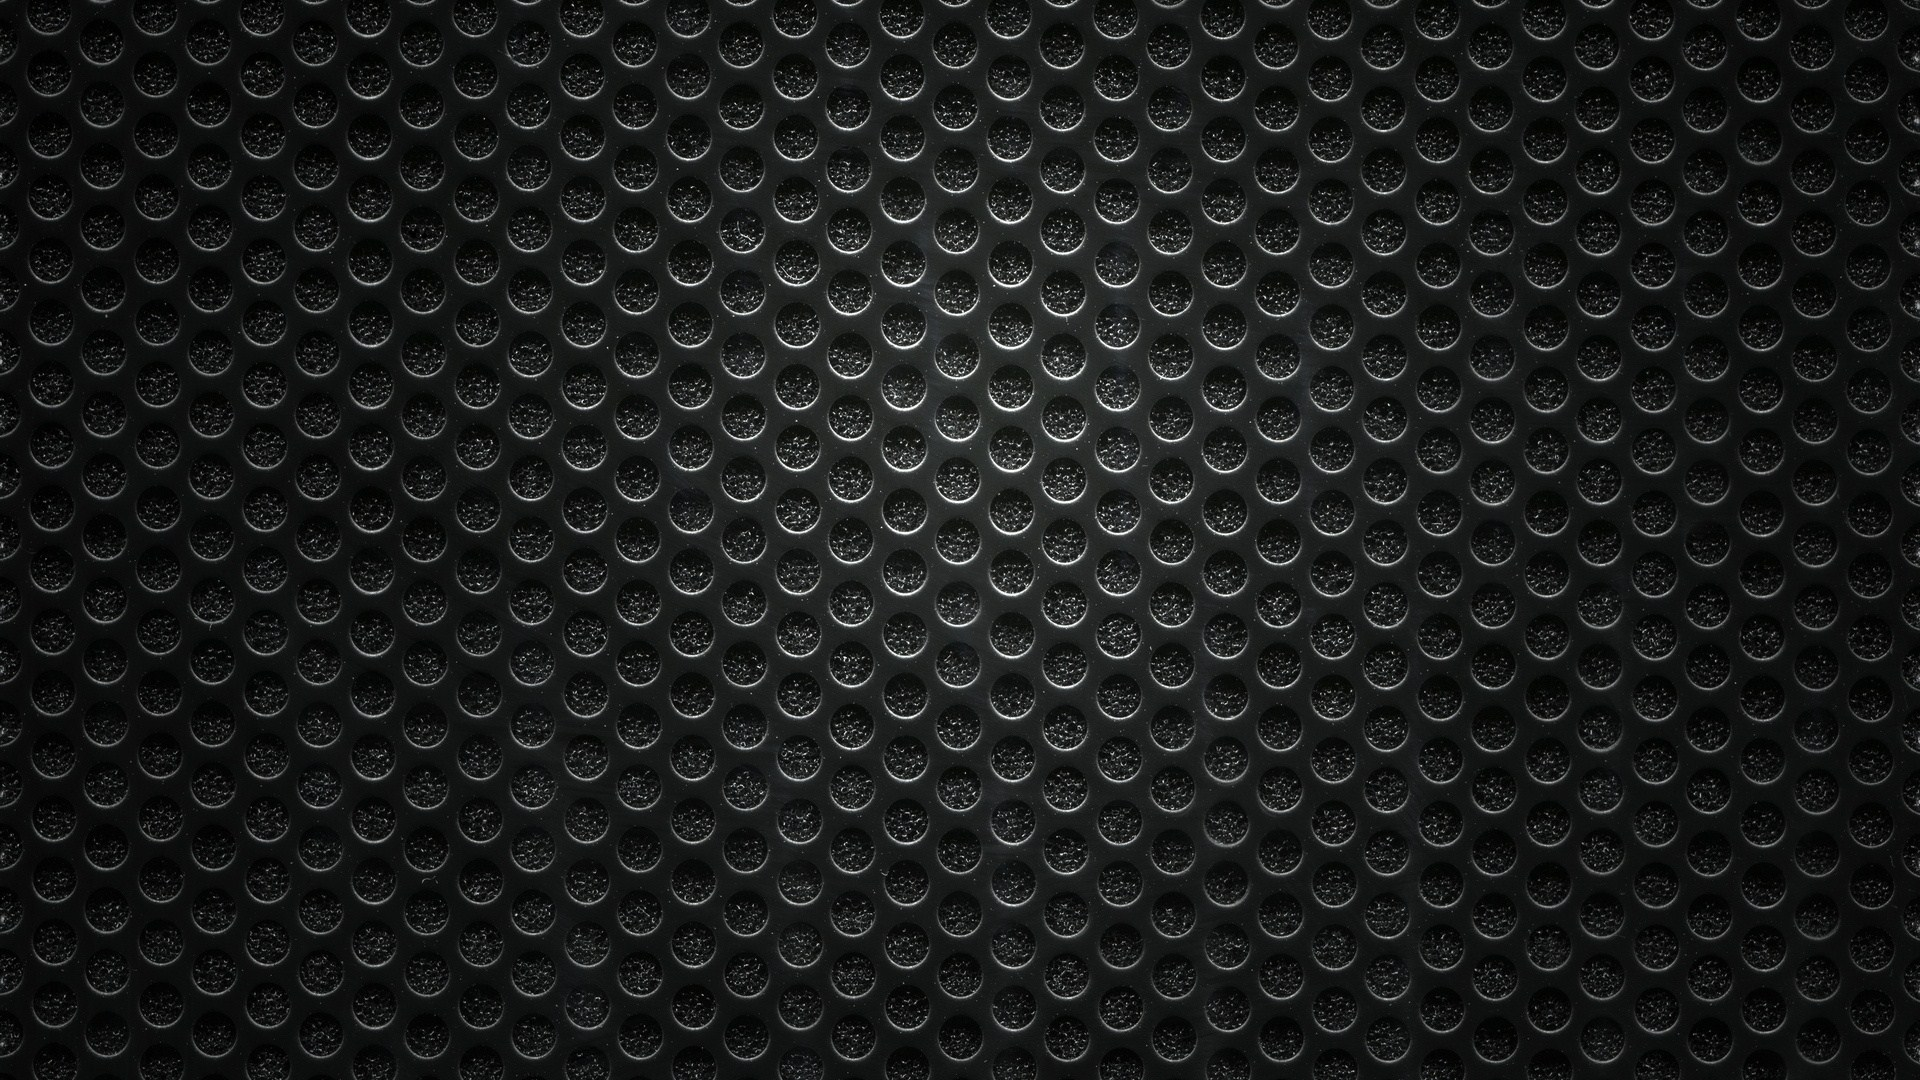 Black Background Texture Wallpaper [1920x1080]